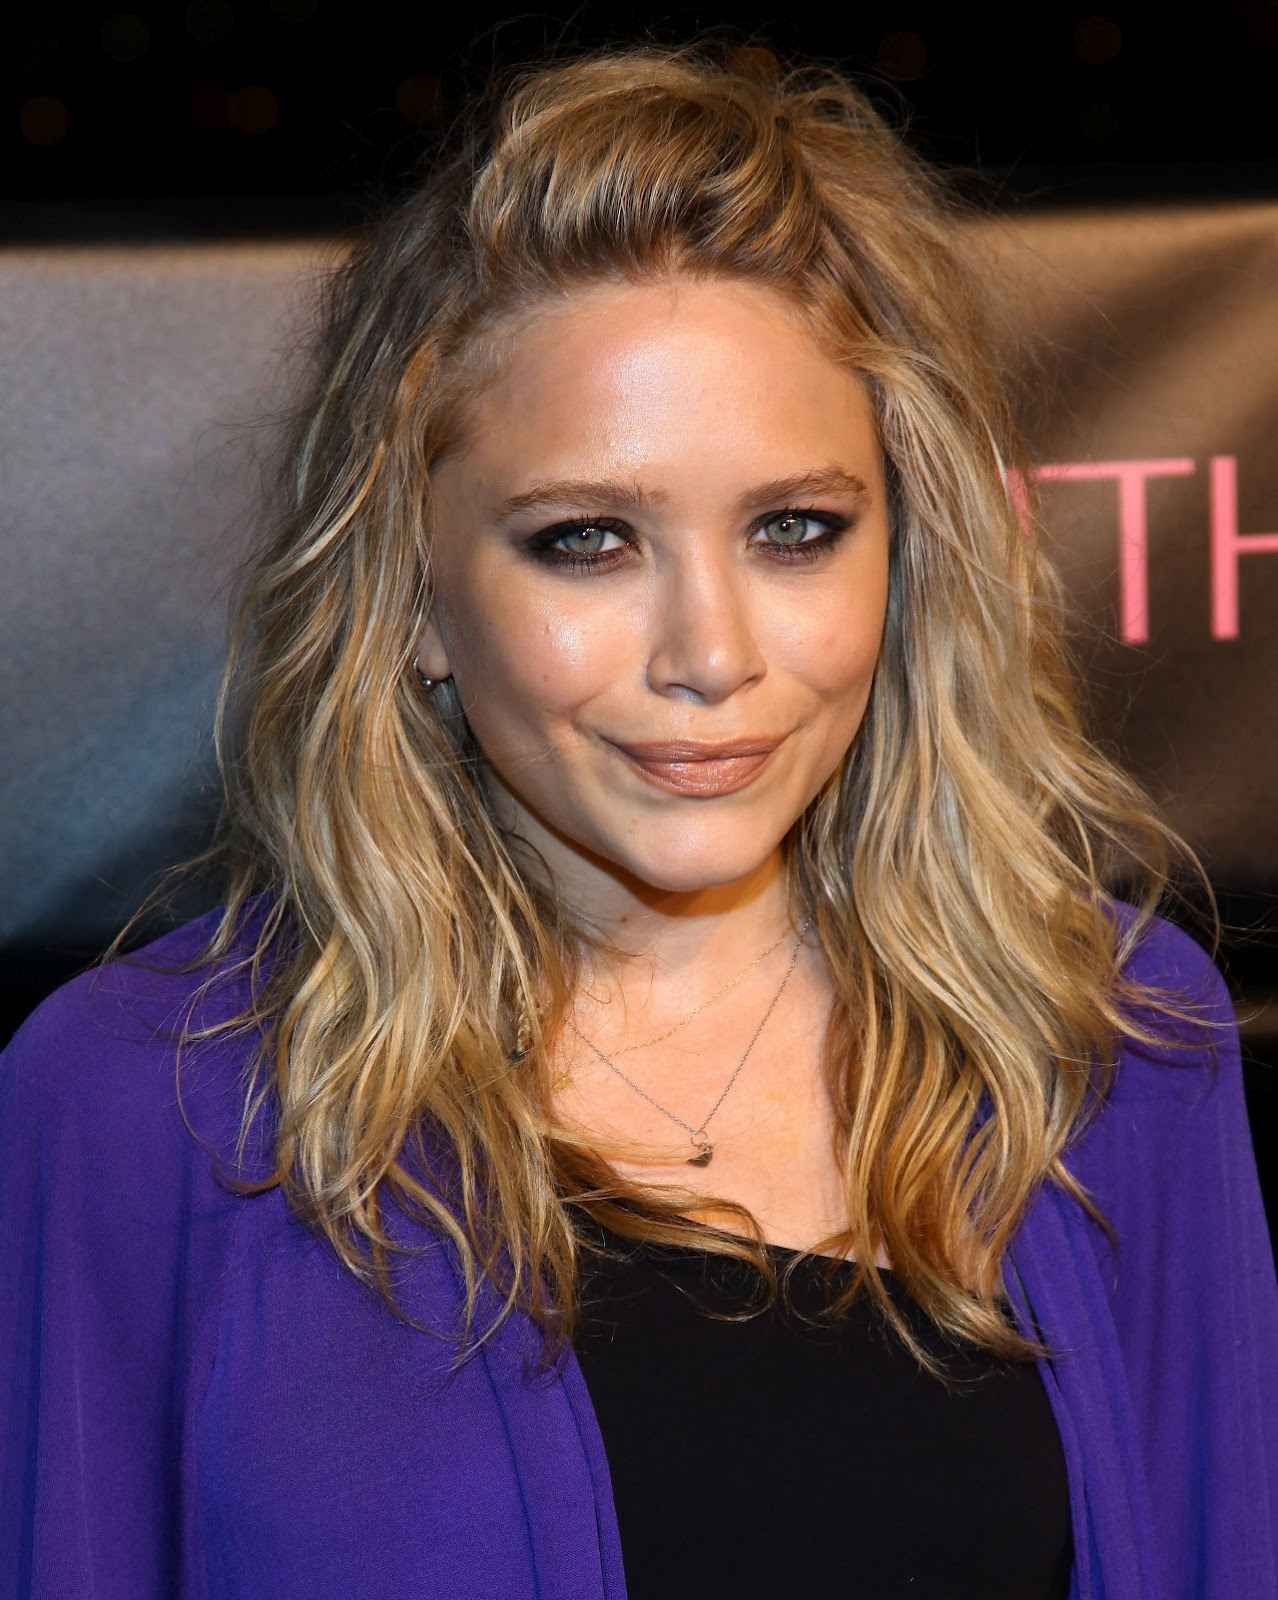 Mary kate olsen bisexual